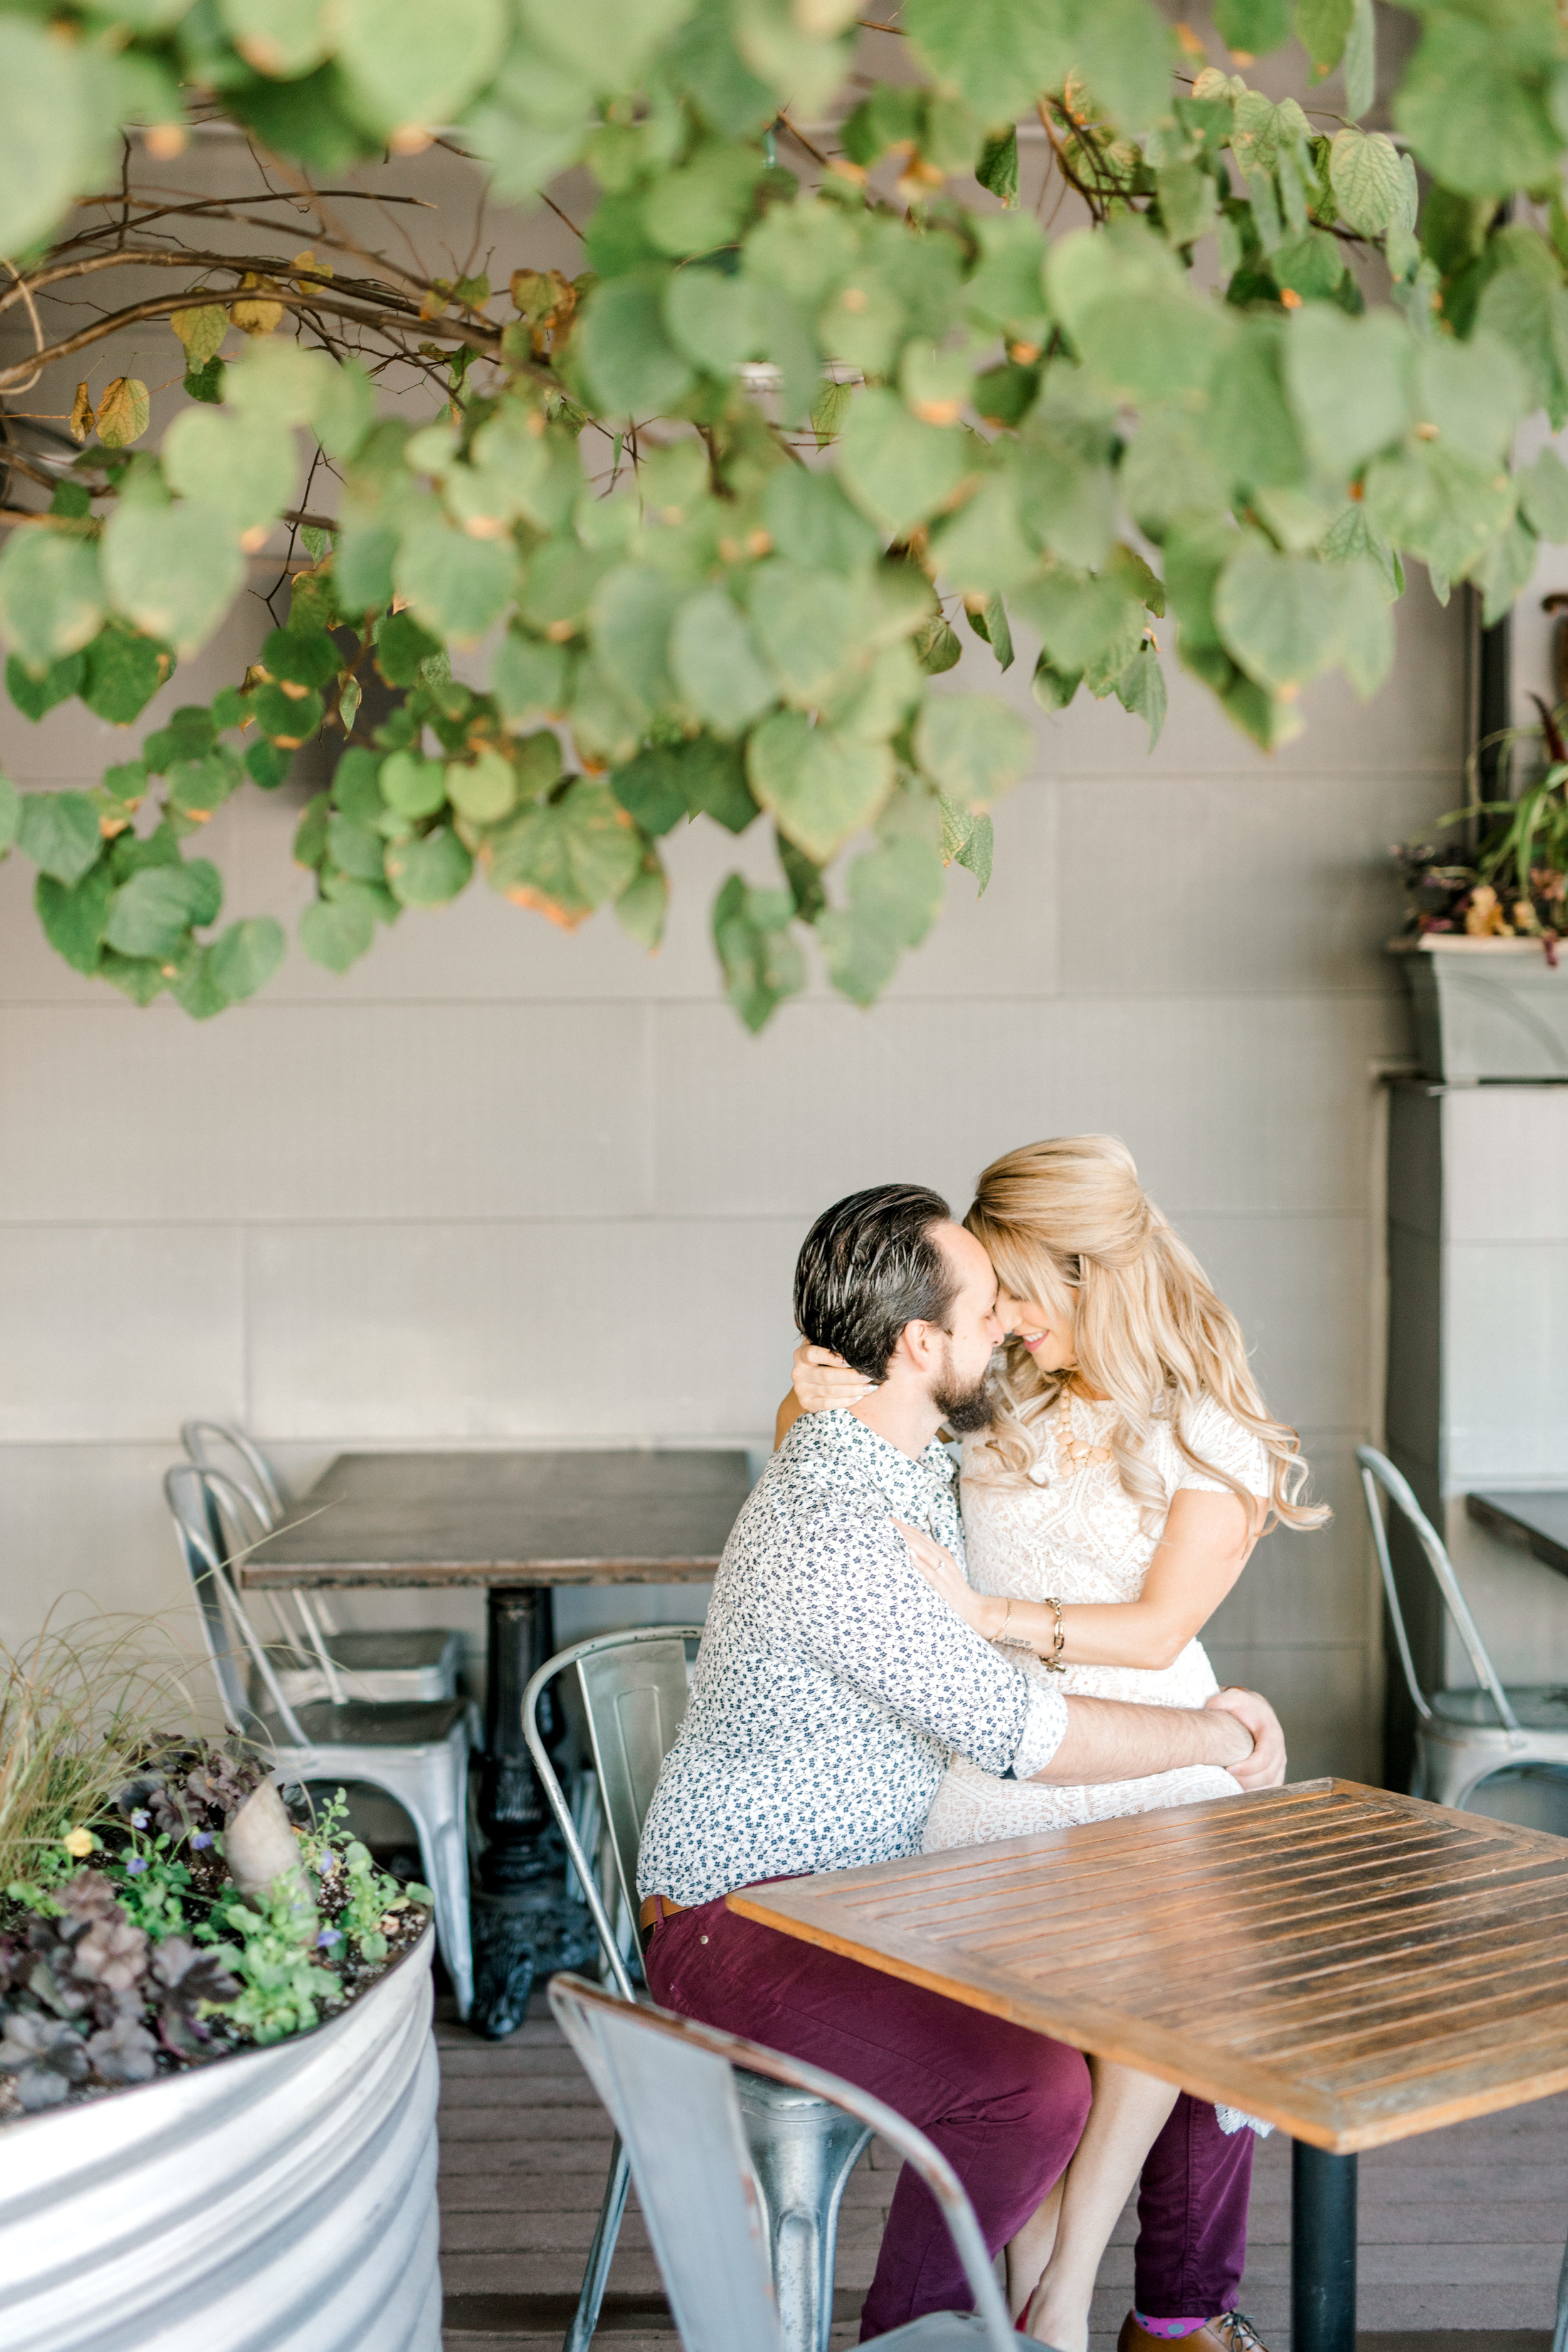 Nikki gets romantic and sits on Dale's lap for their bright fall engagement session on the patio at the Revolution House in Old City, Philadelphia.